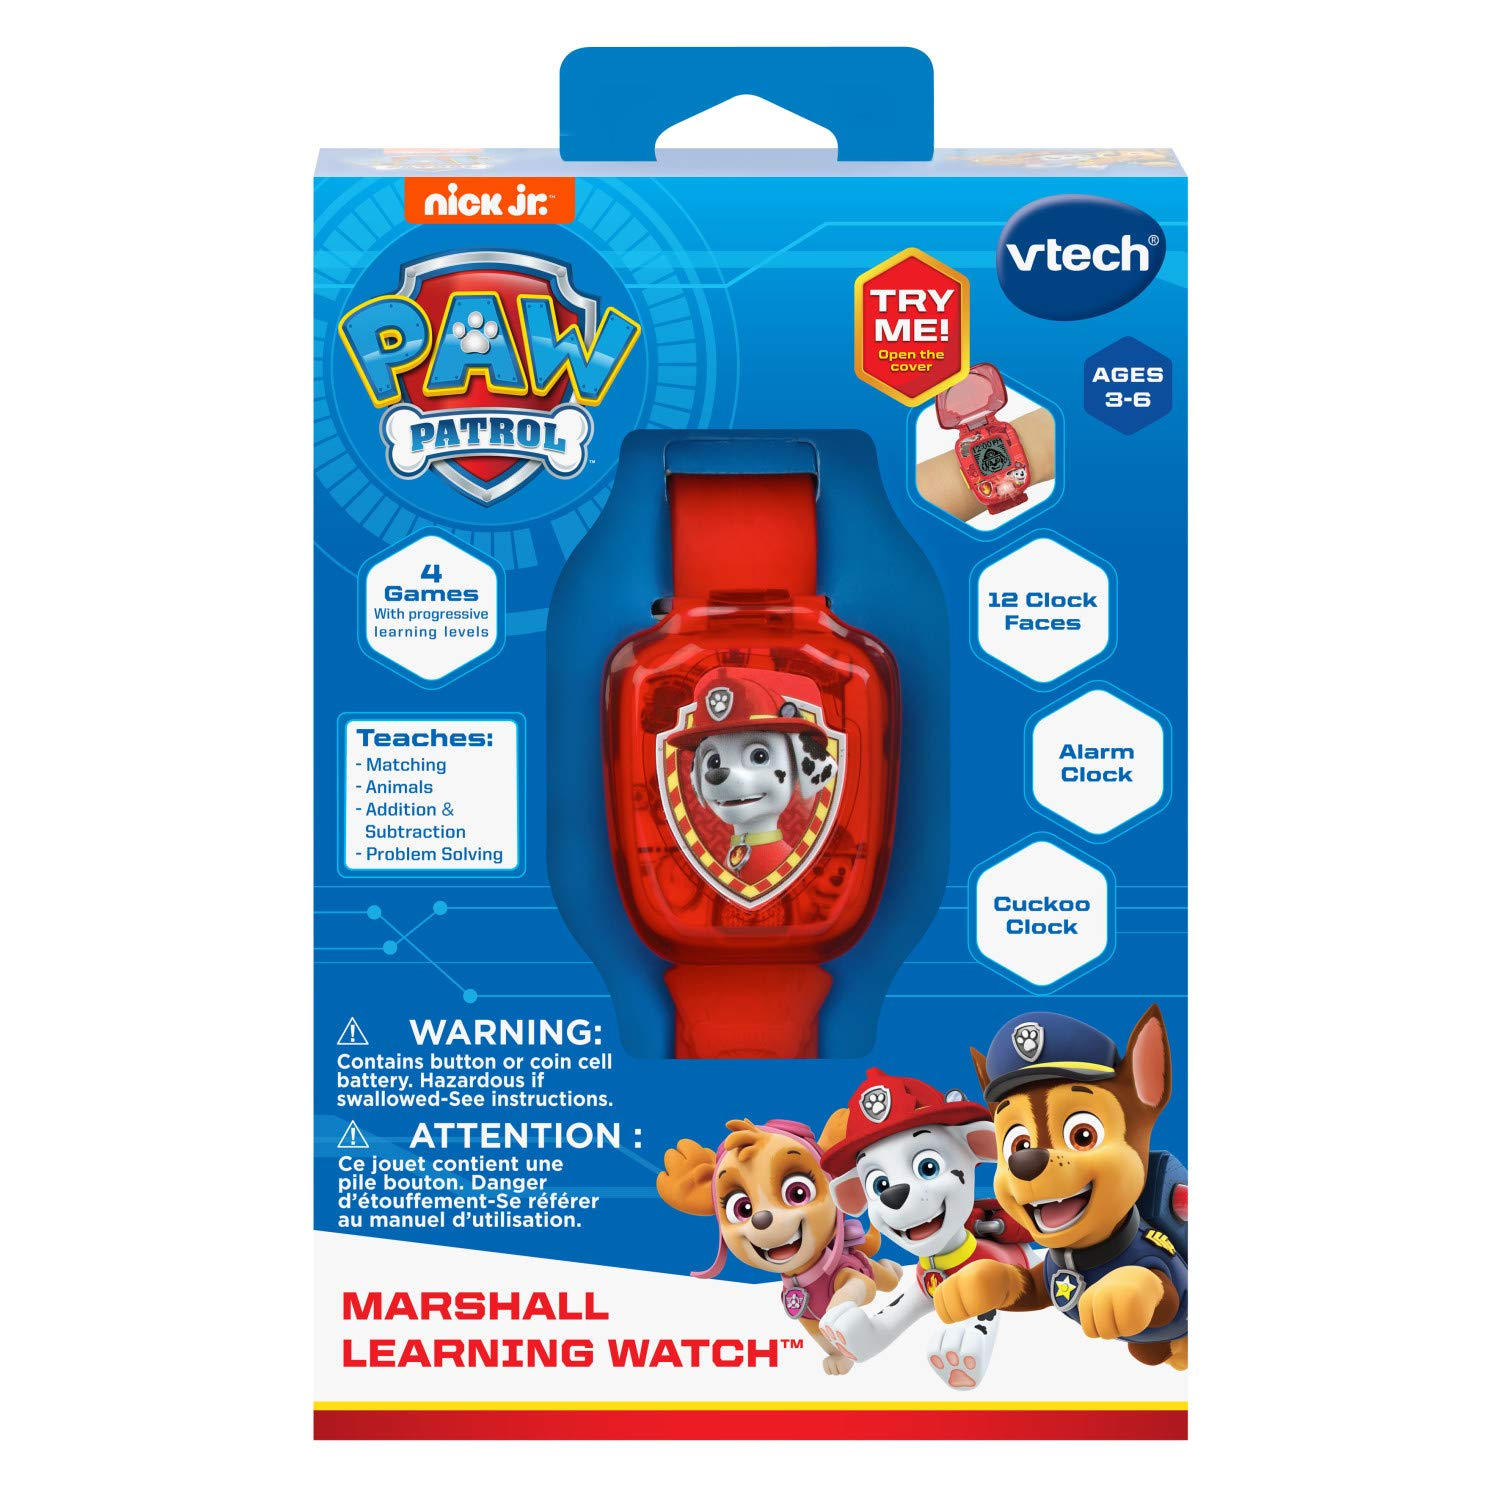 VTech PAW Patrol Marshall Learning Watch, Red by VTech (Image #5)